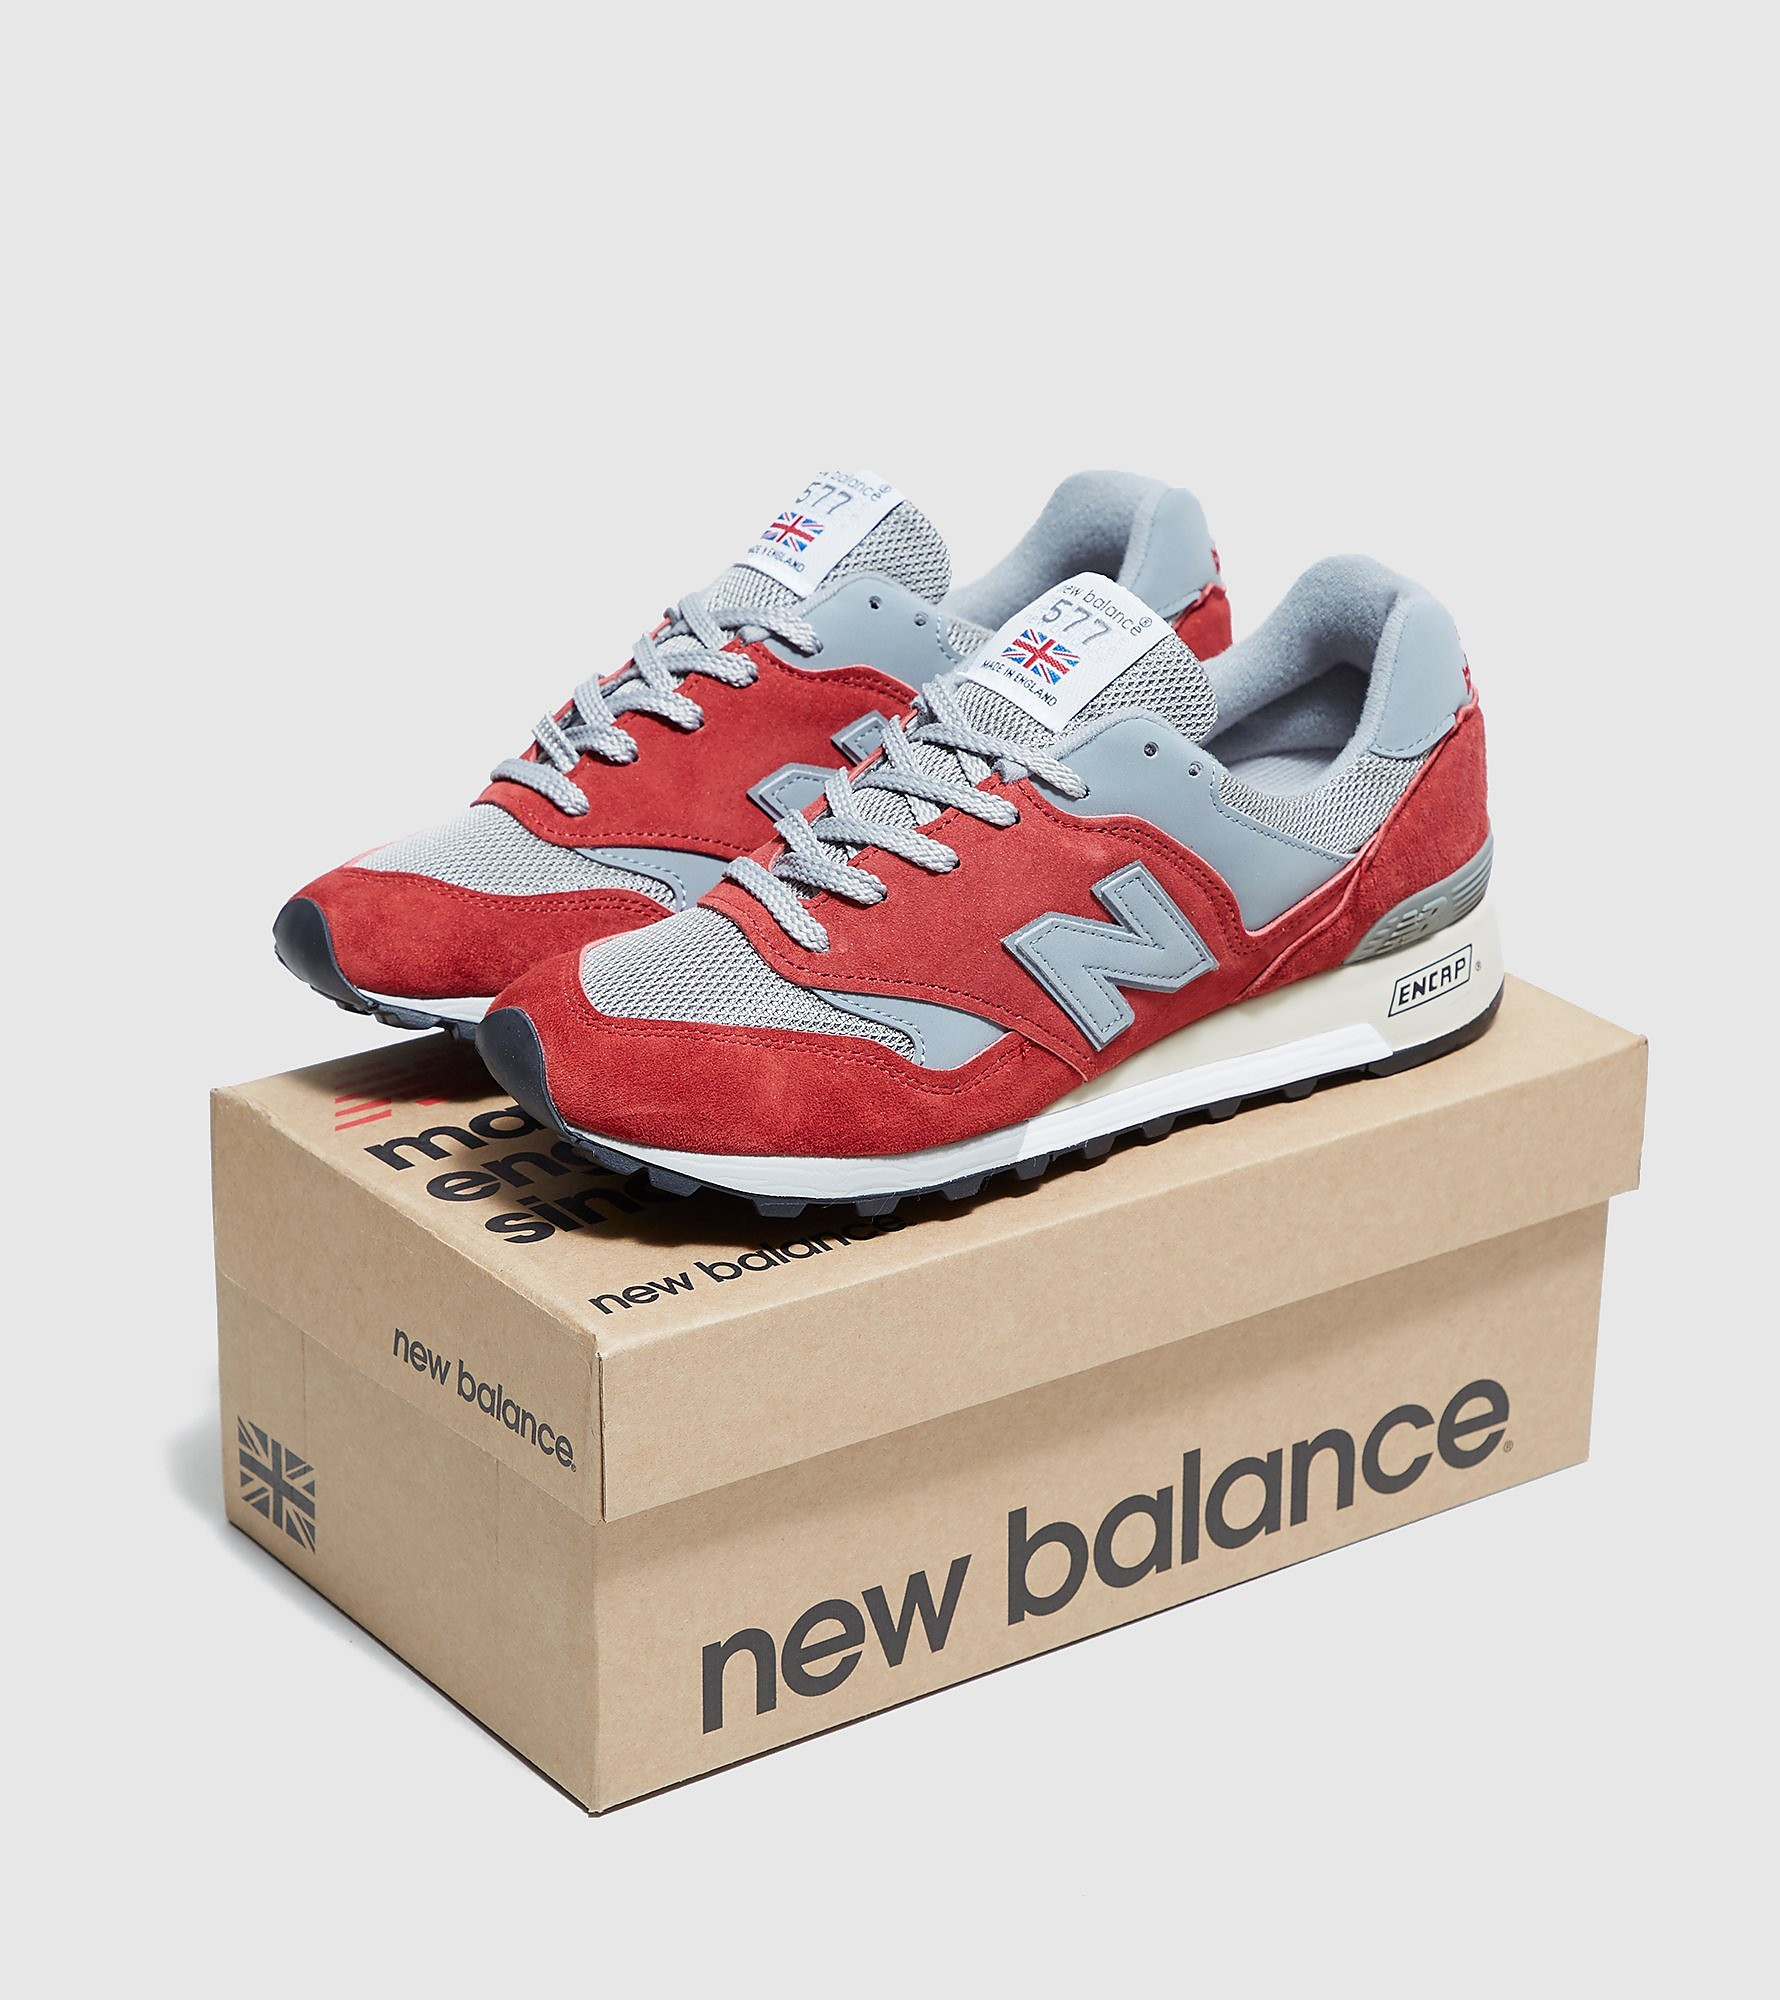 New Balance 577 Suede